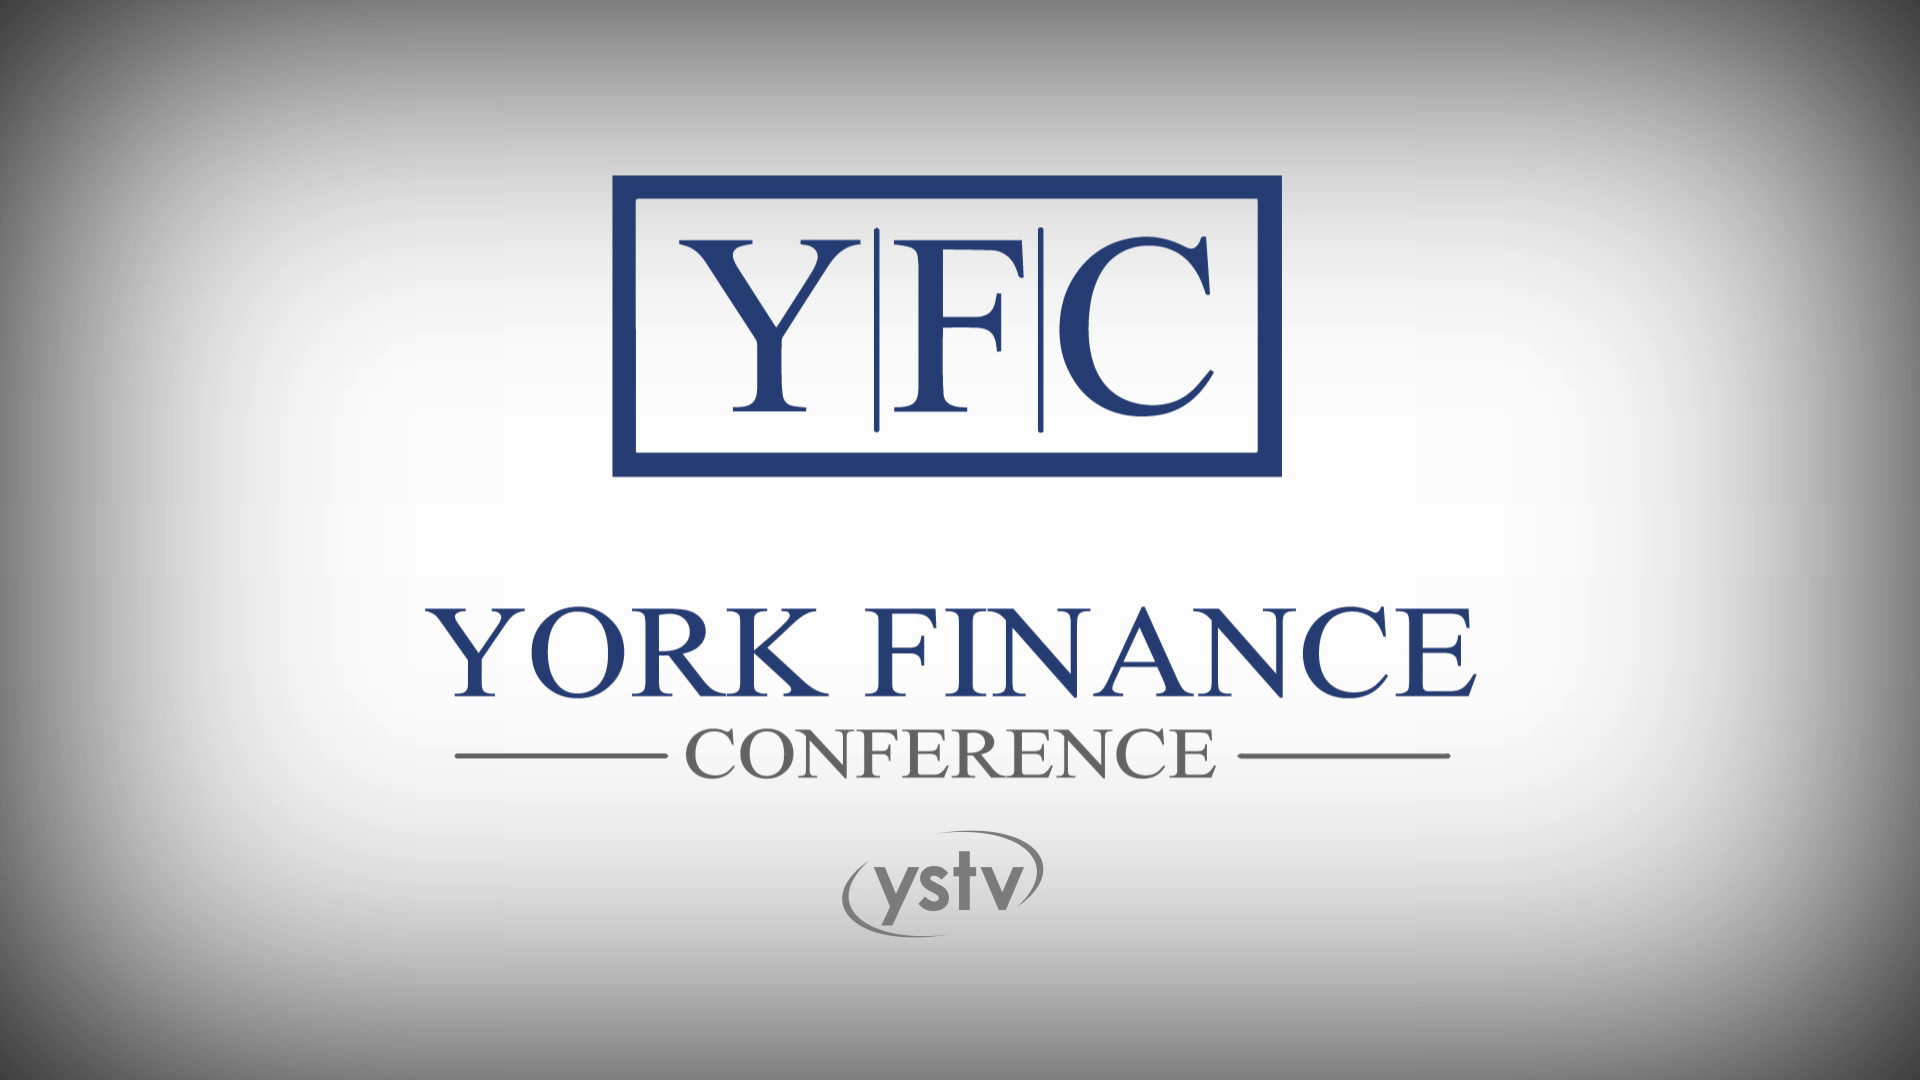 York Finance Conference 2016